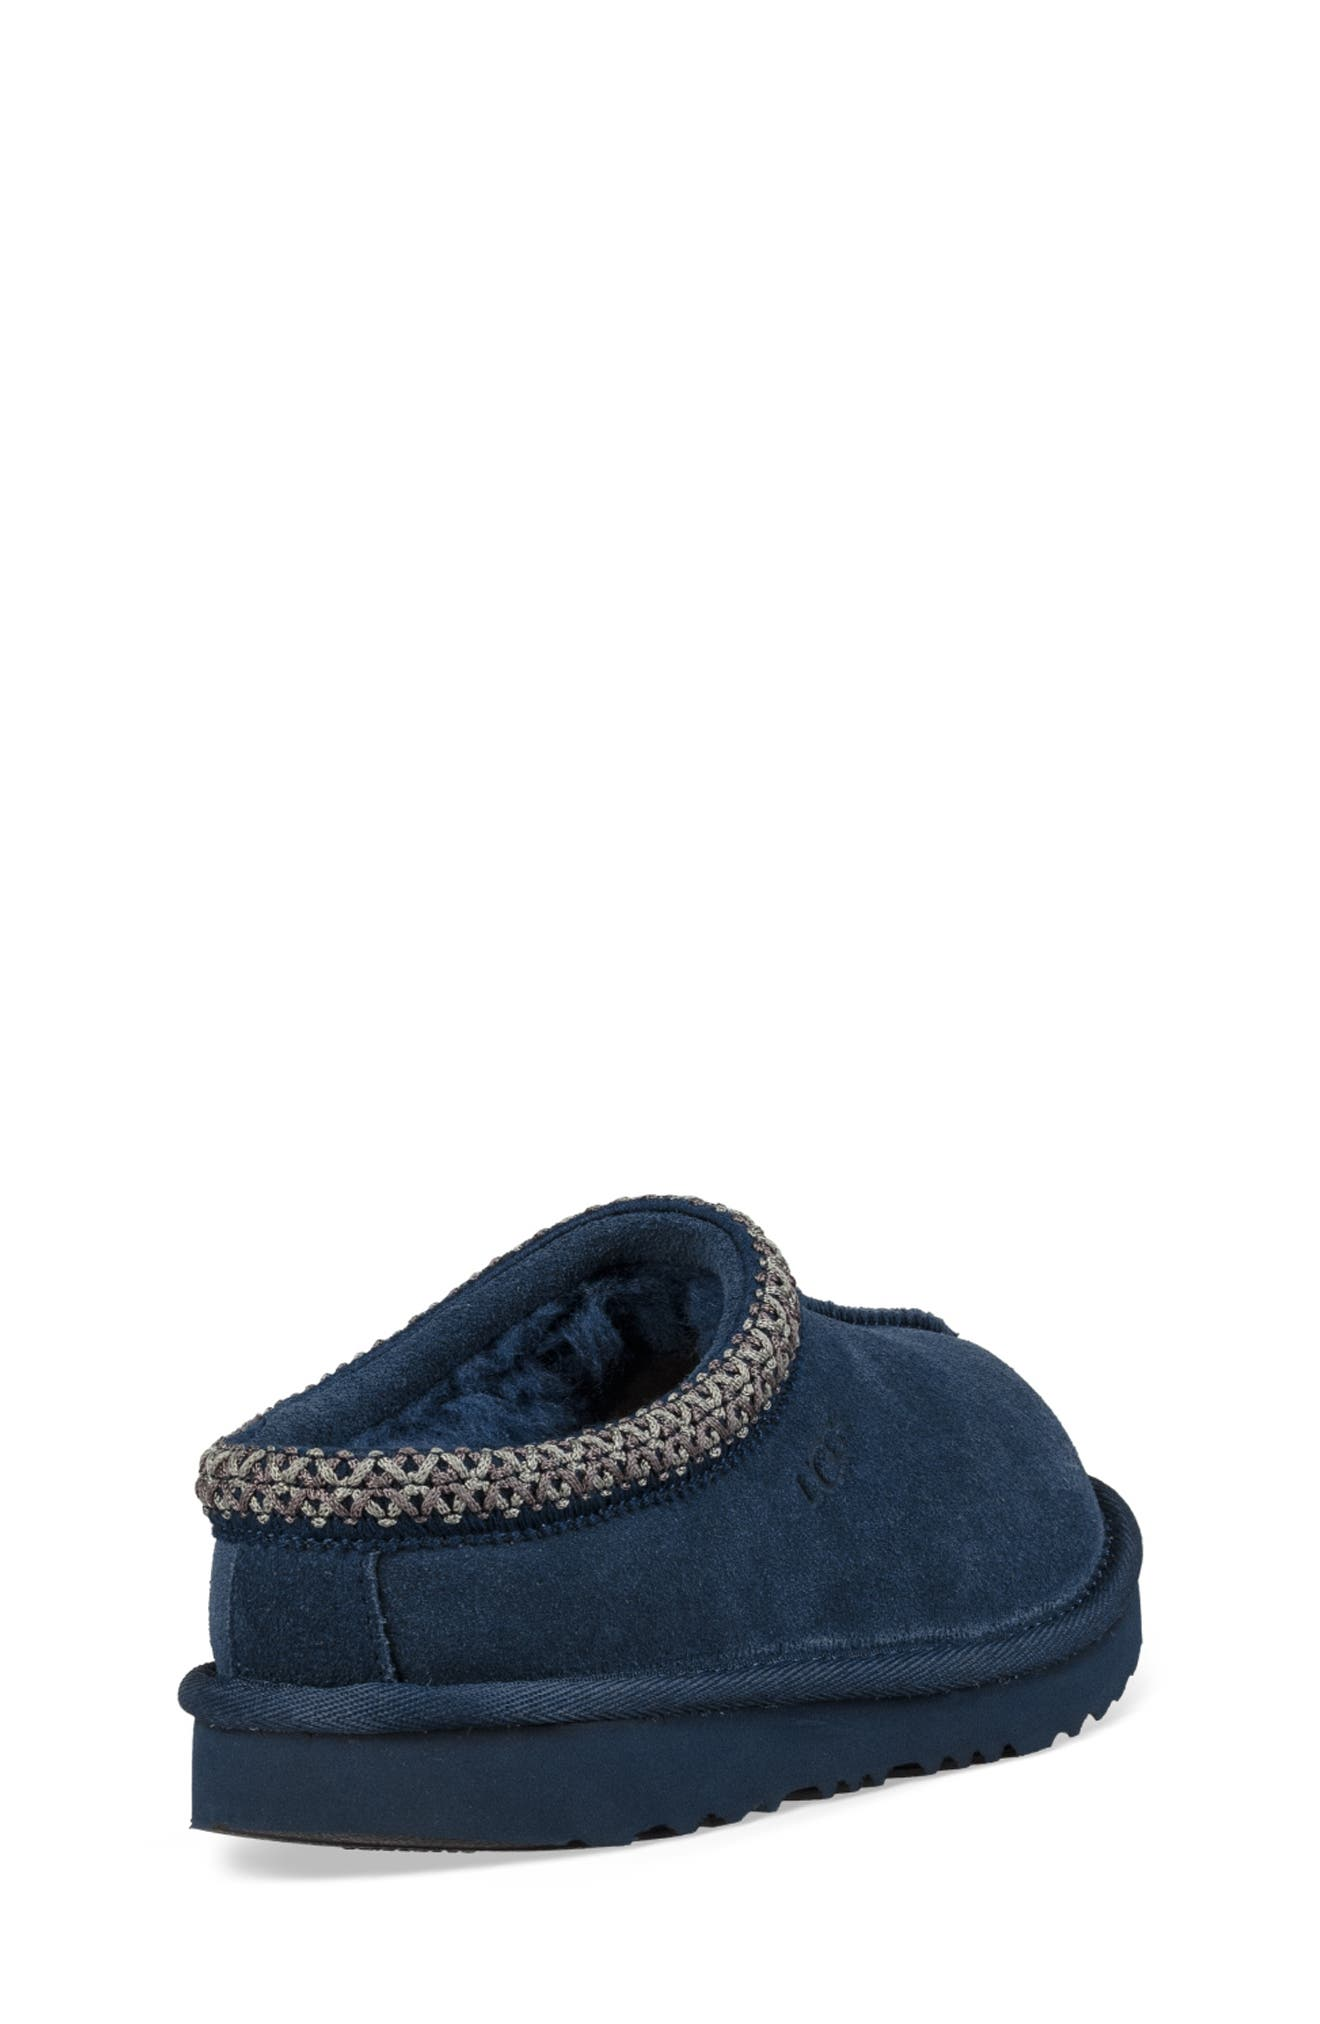 UGG<SUP>®</SUP>, K-Tasman II Embroidered Slipper, Alternate thumbnail 2, color, NEW NAVY